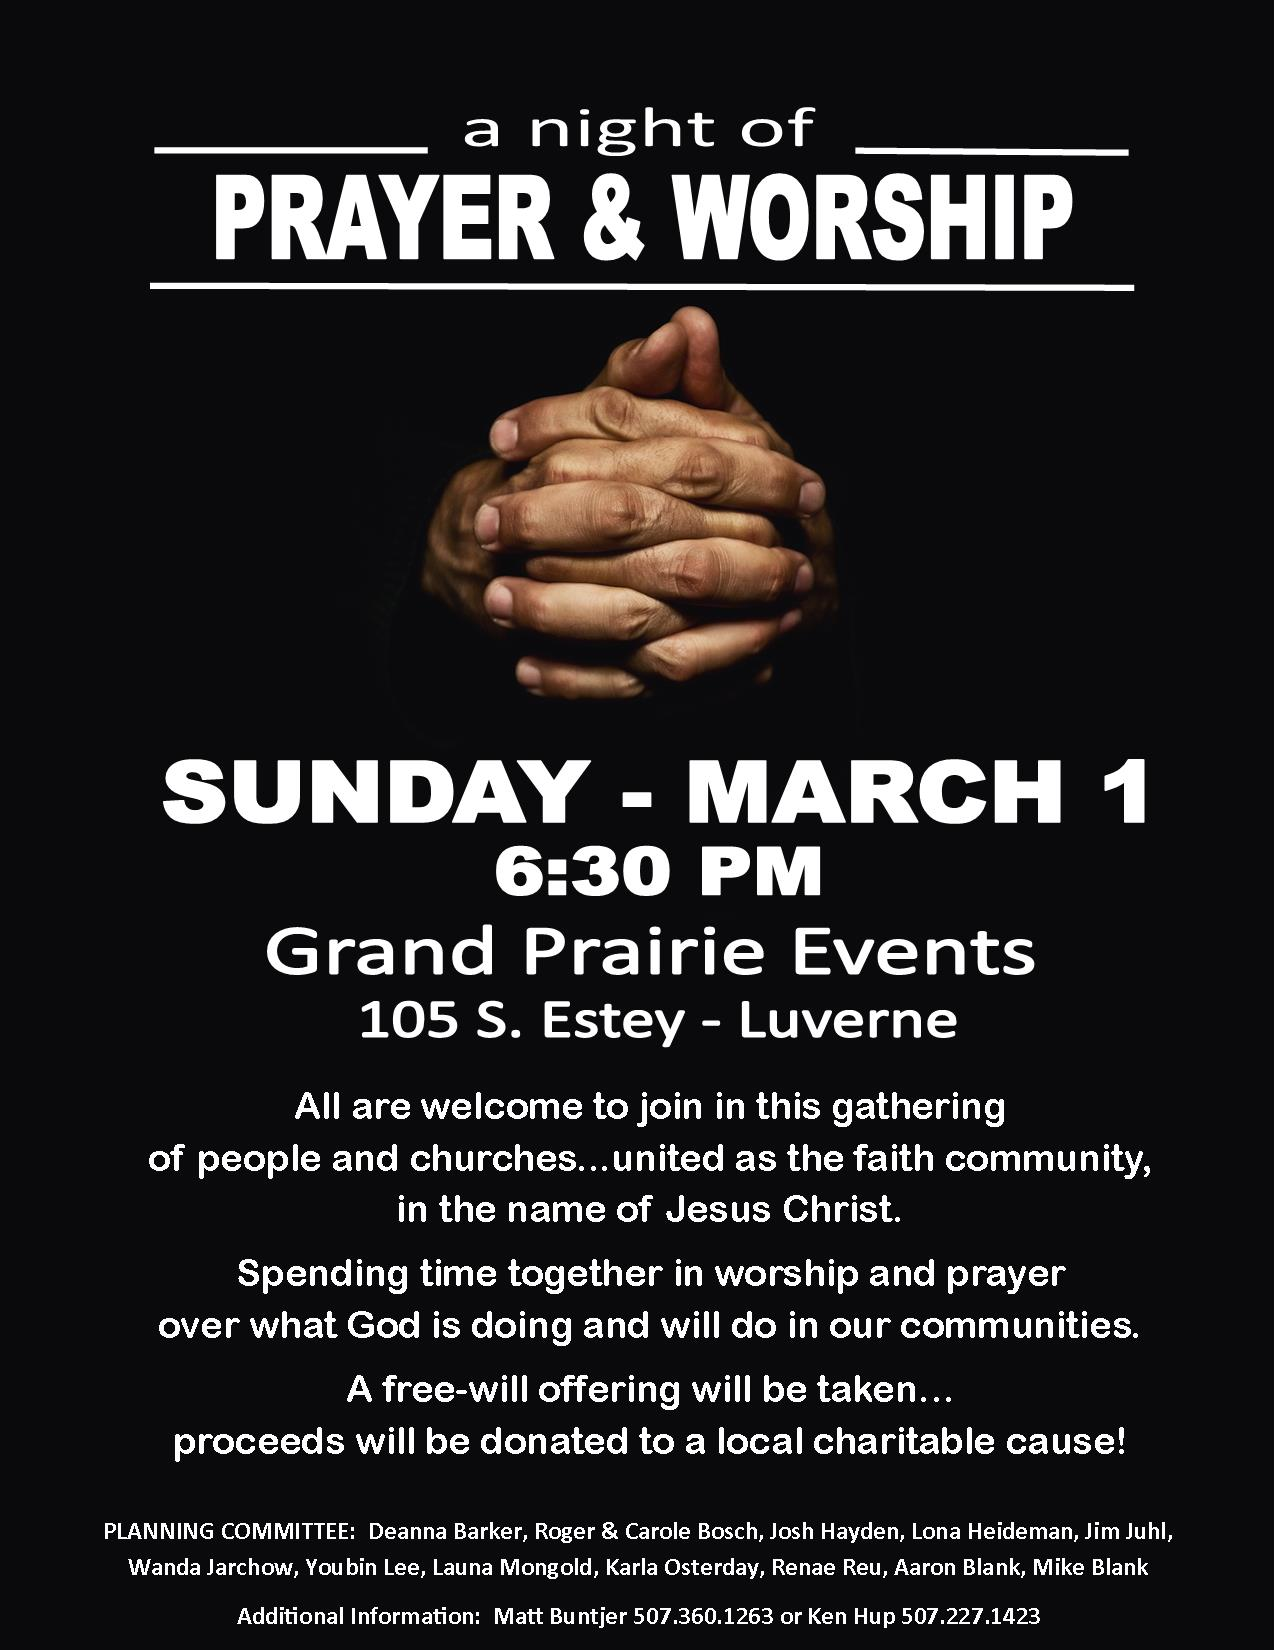 A Night of Prayer and Worship